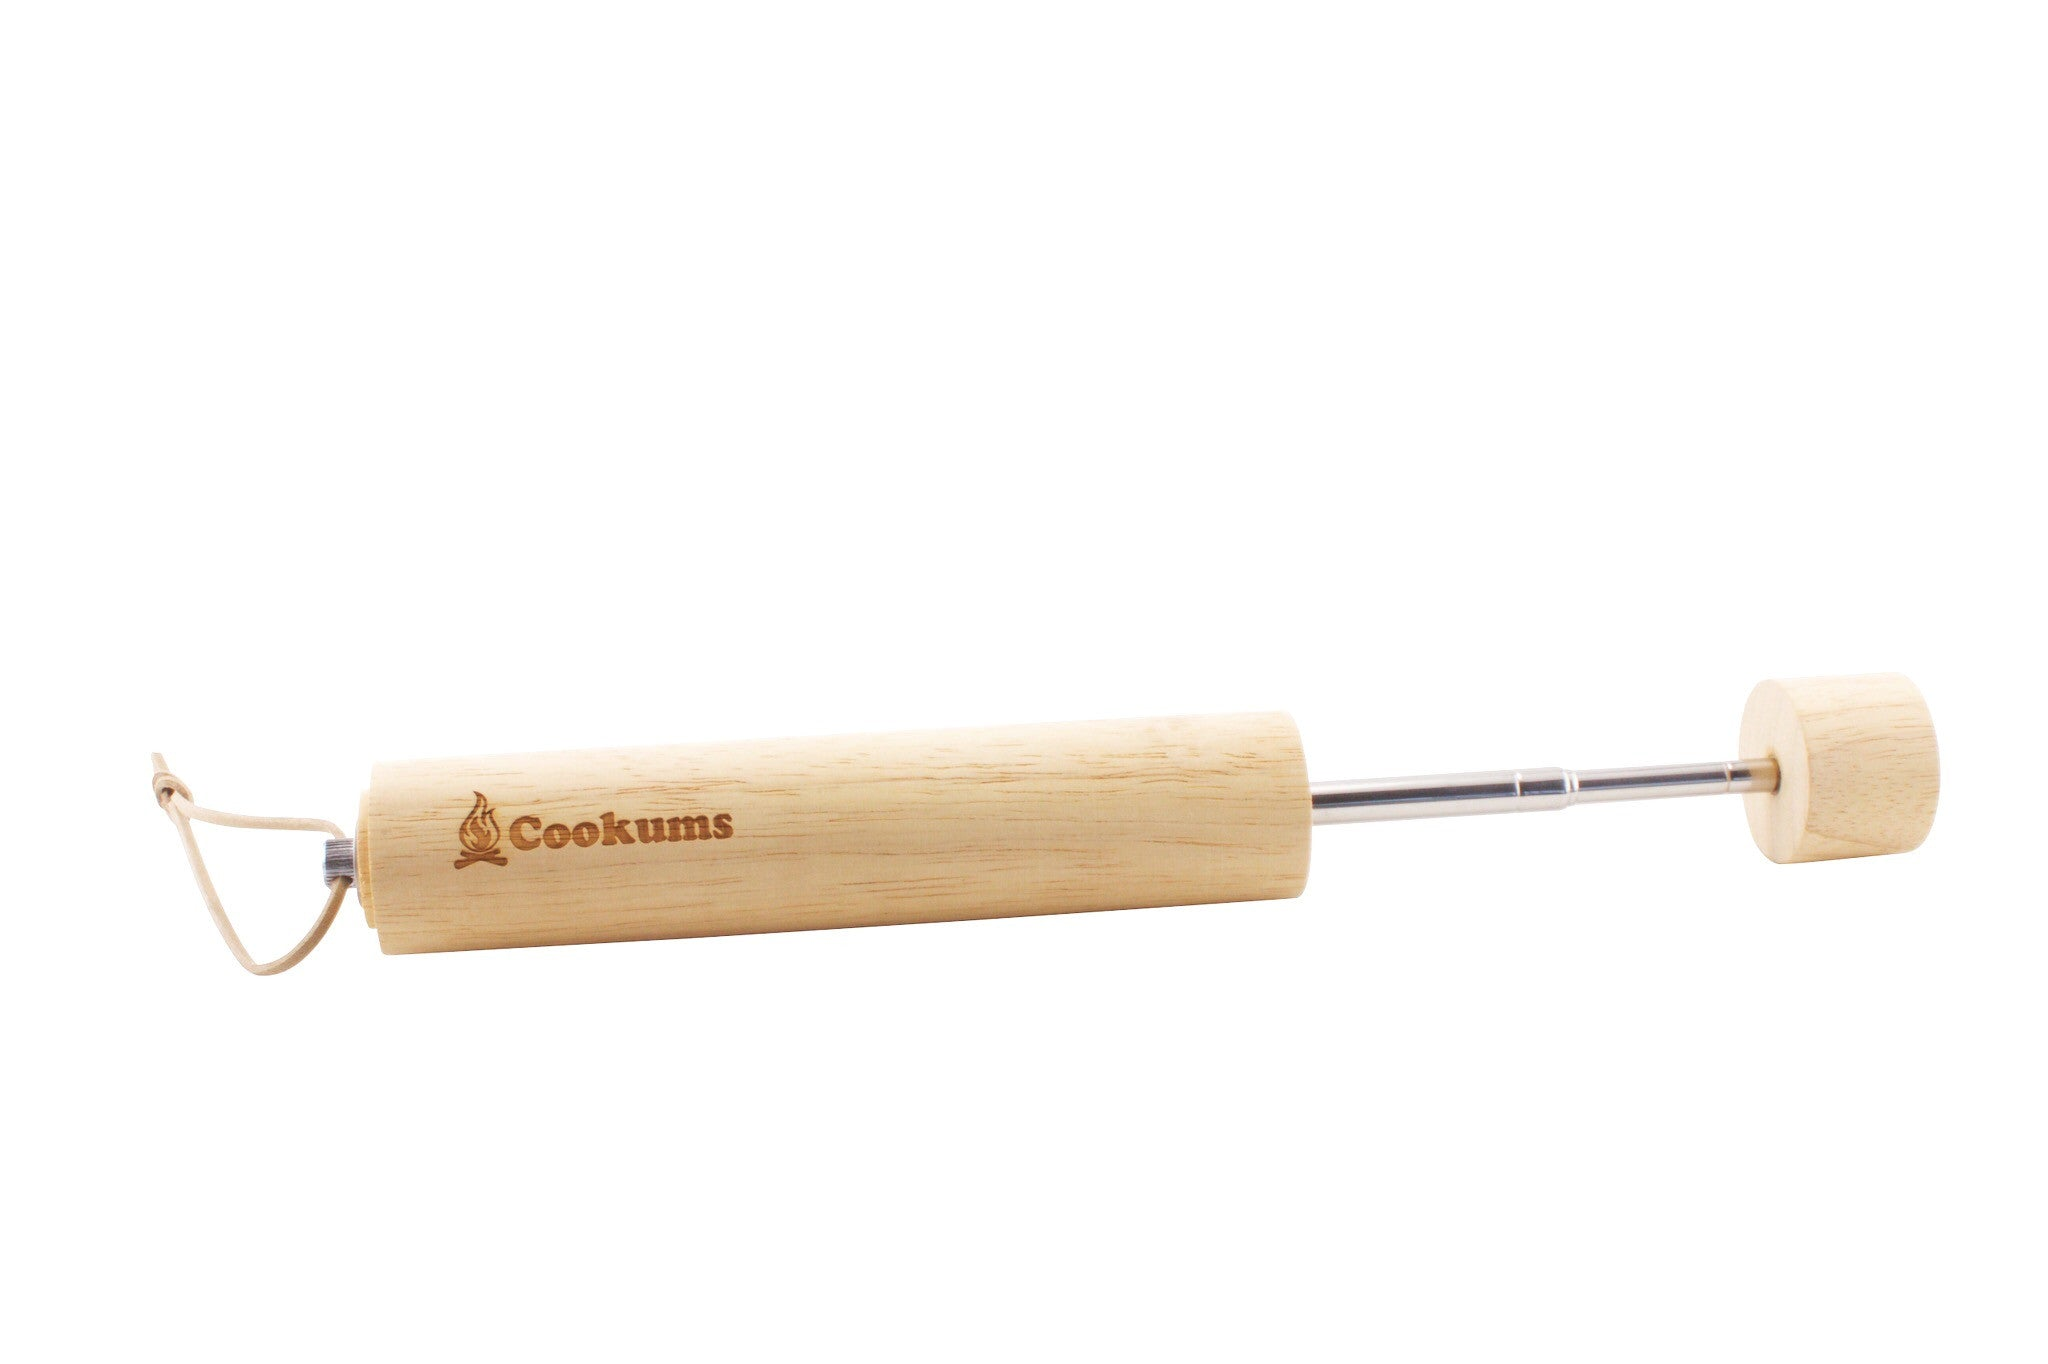 One Cookum Stick